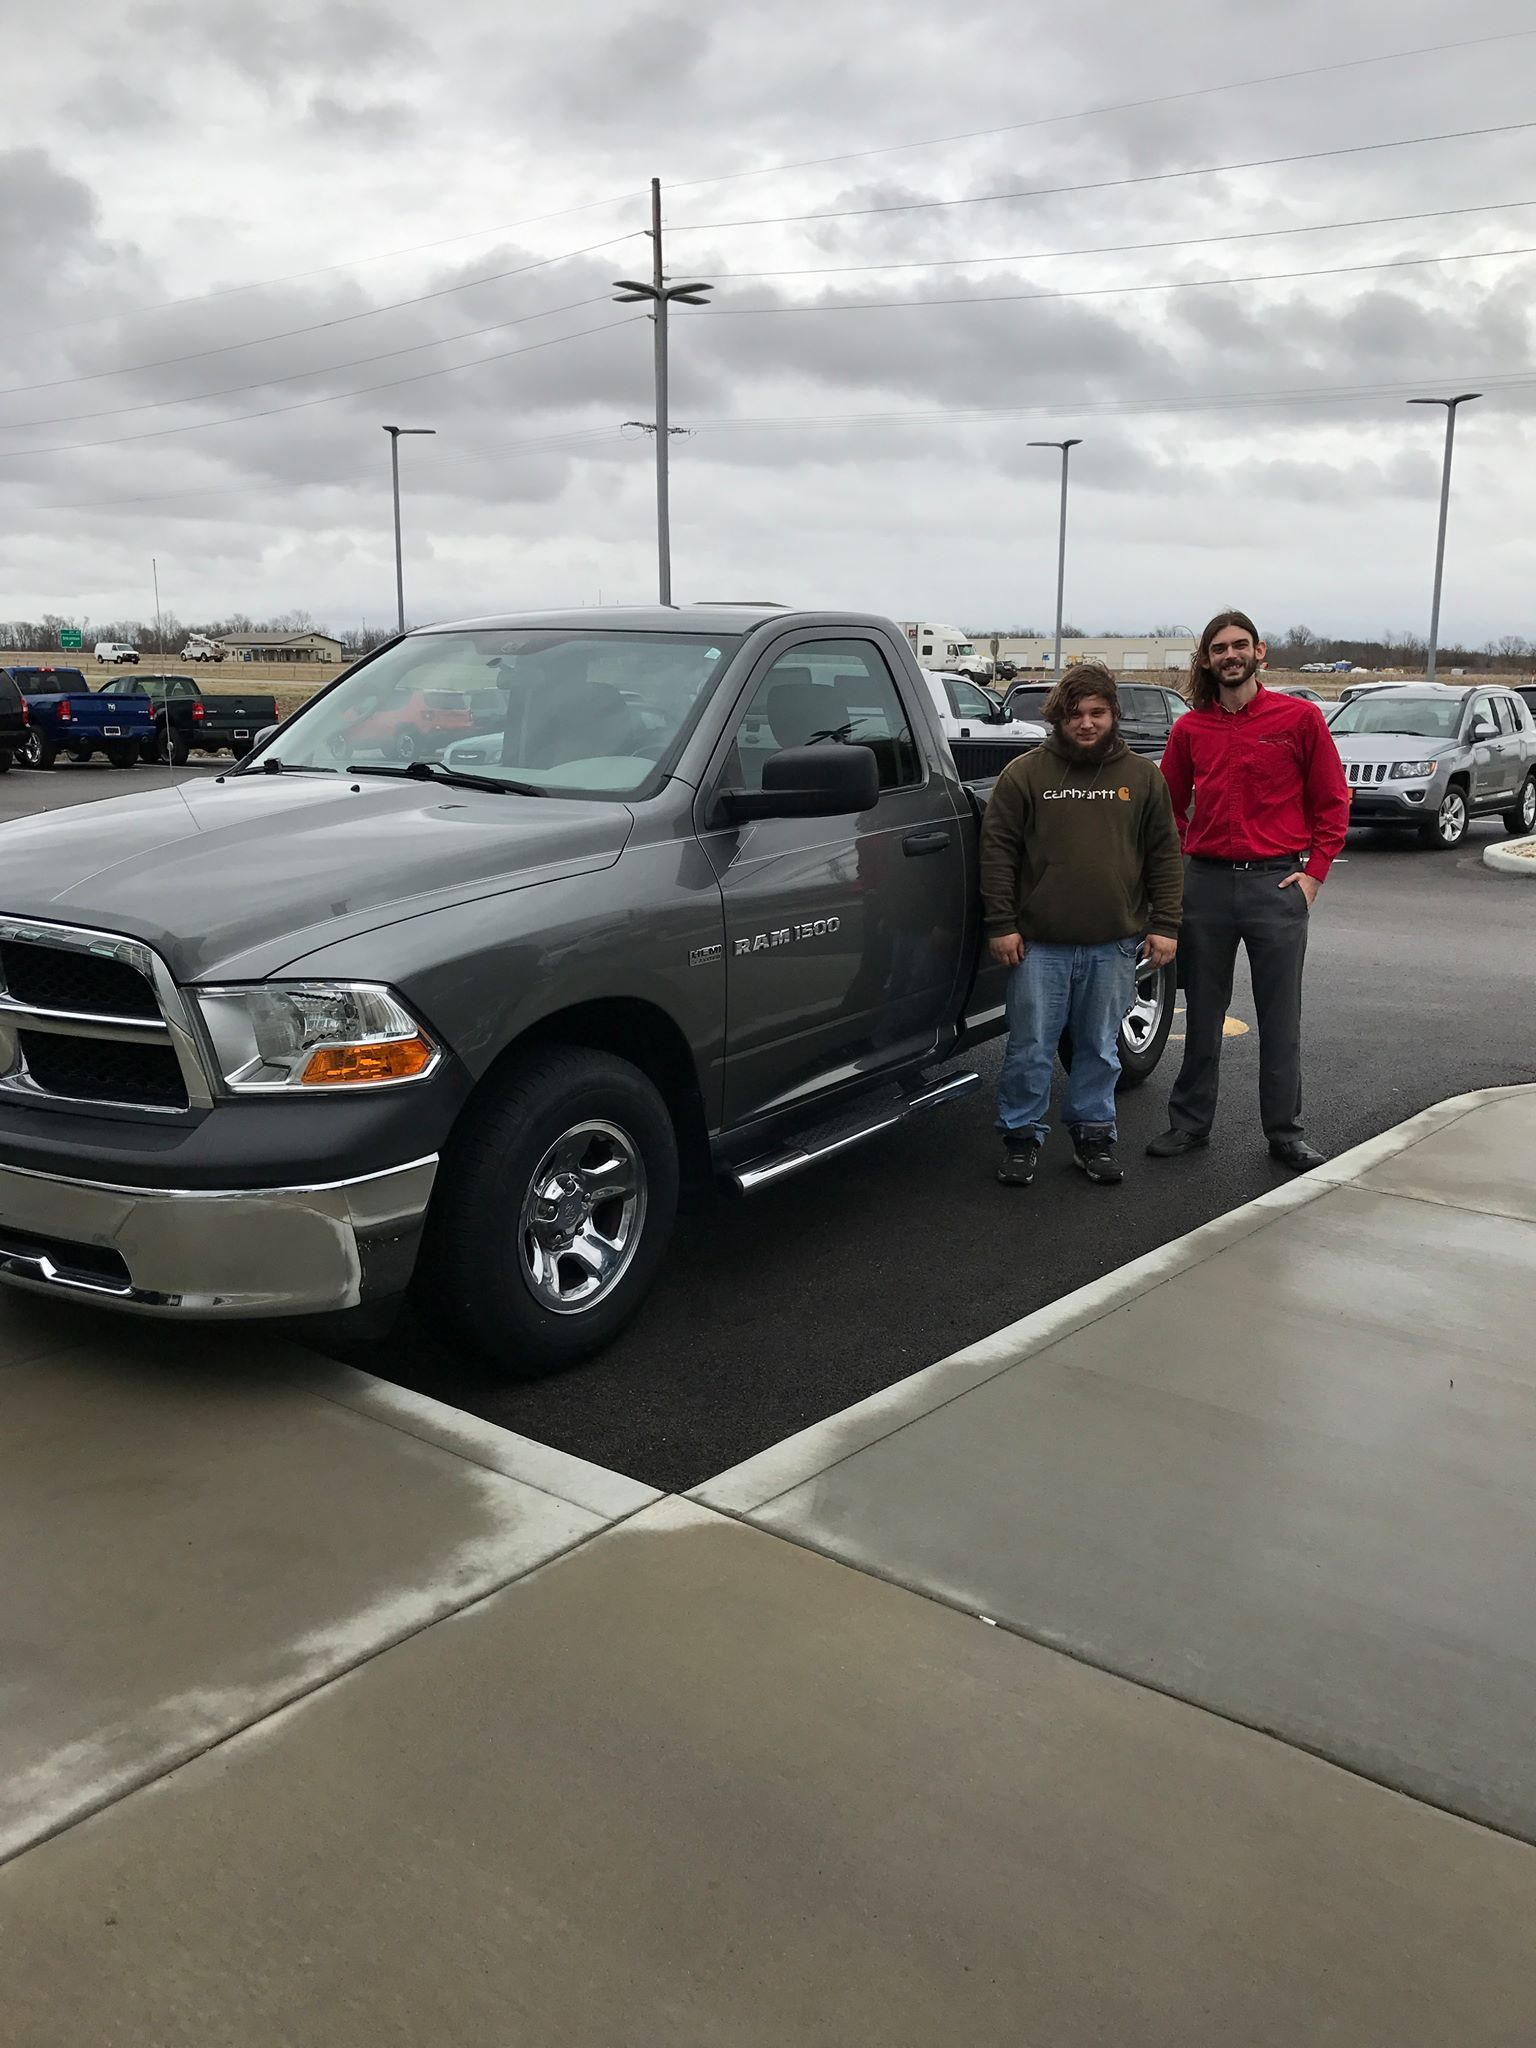 Congratulations On Your New Truck Tylor We Look Forward To